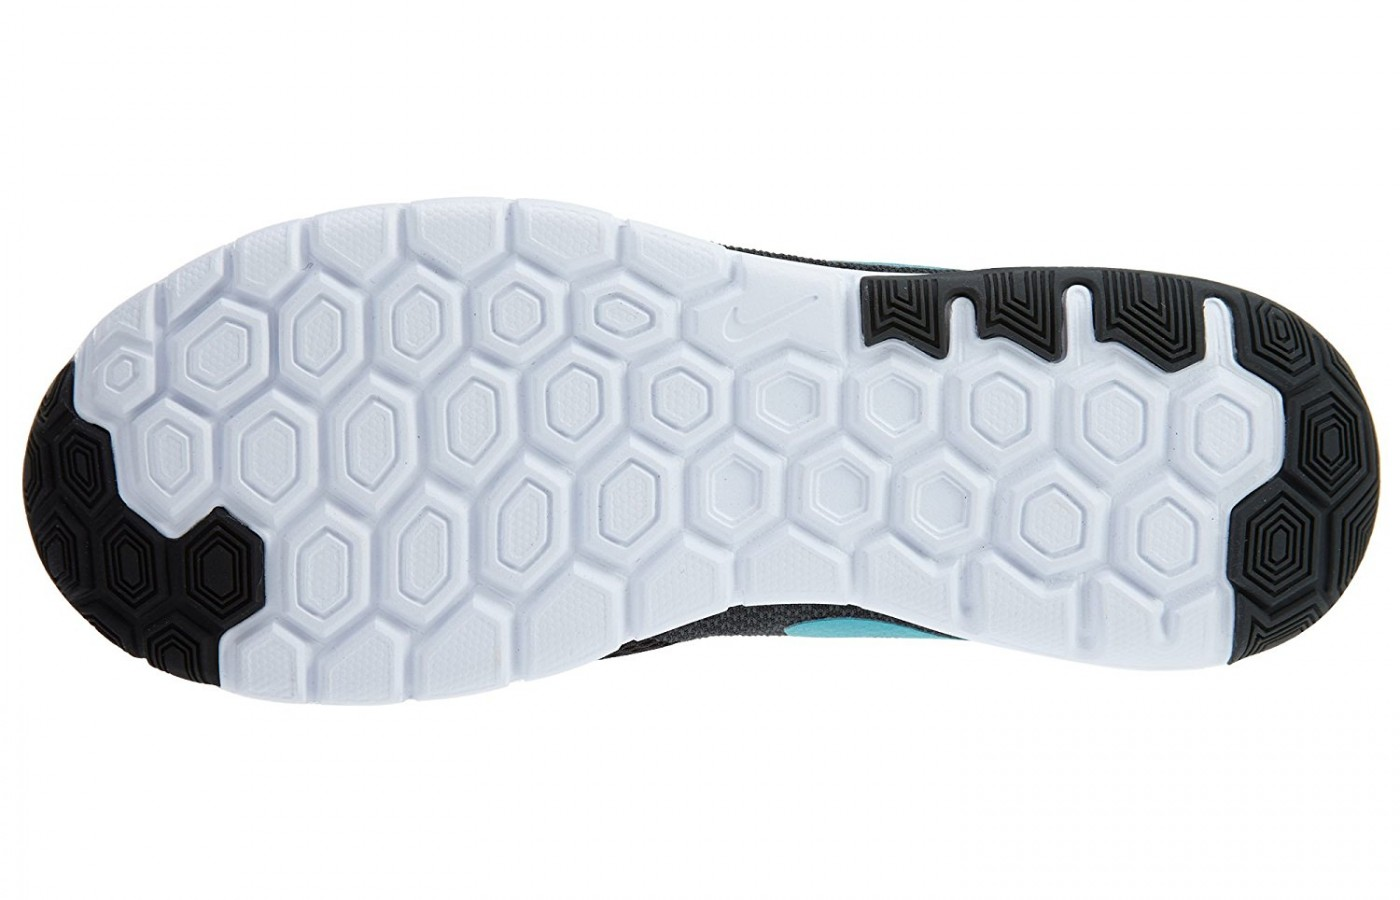 the hexagon-shaped bottom of the Nike Flex Experience RN 6 helps with flexibility